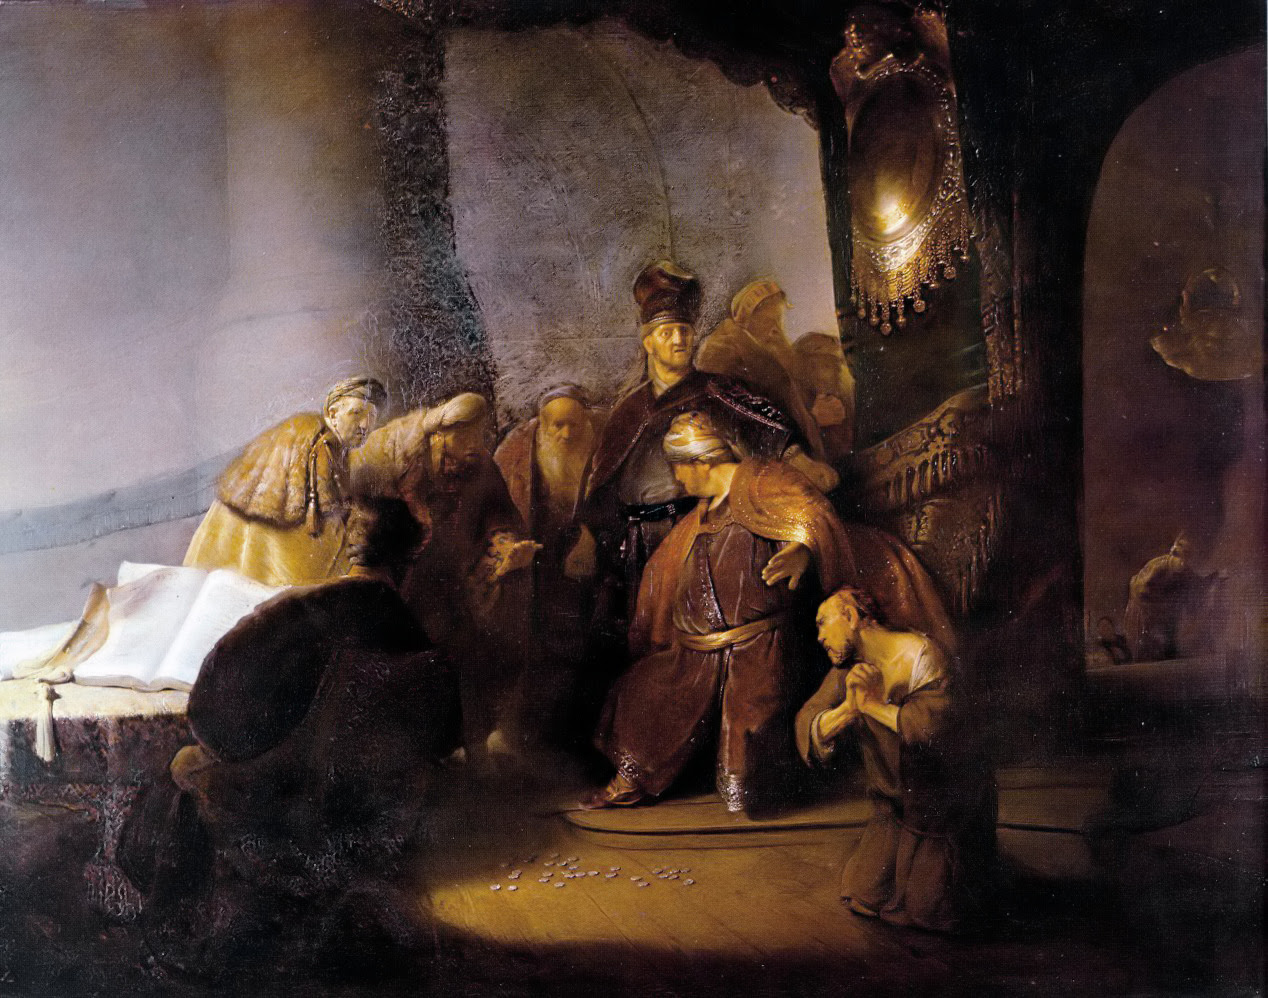 File:Judas Returning the Thirty Silver Pieces - Rembrandt.jpg